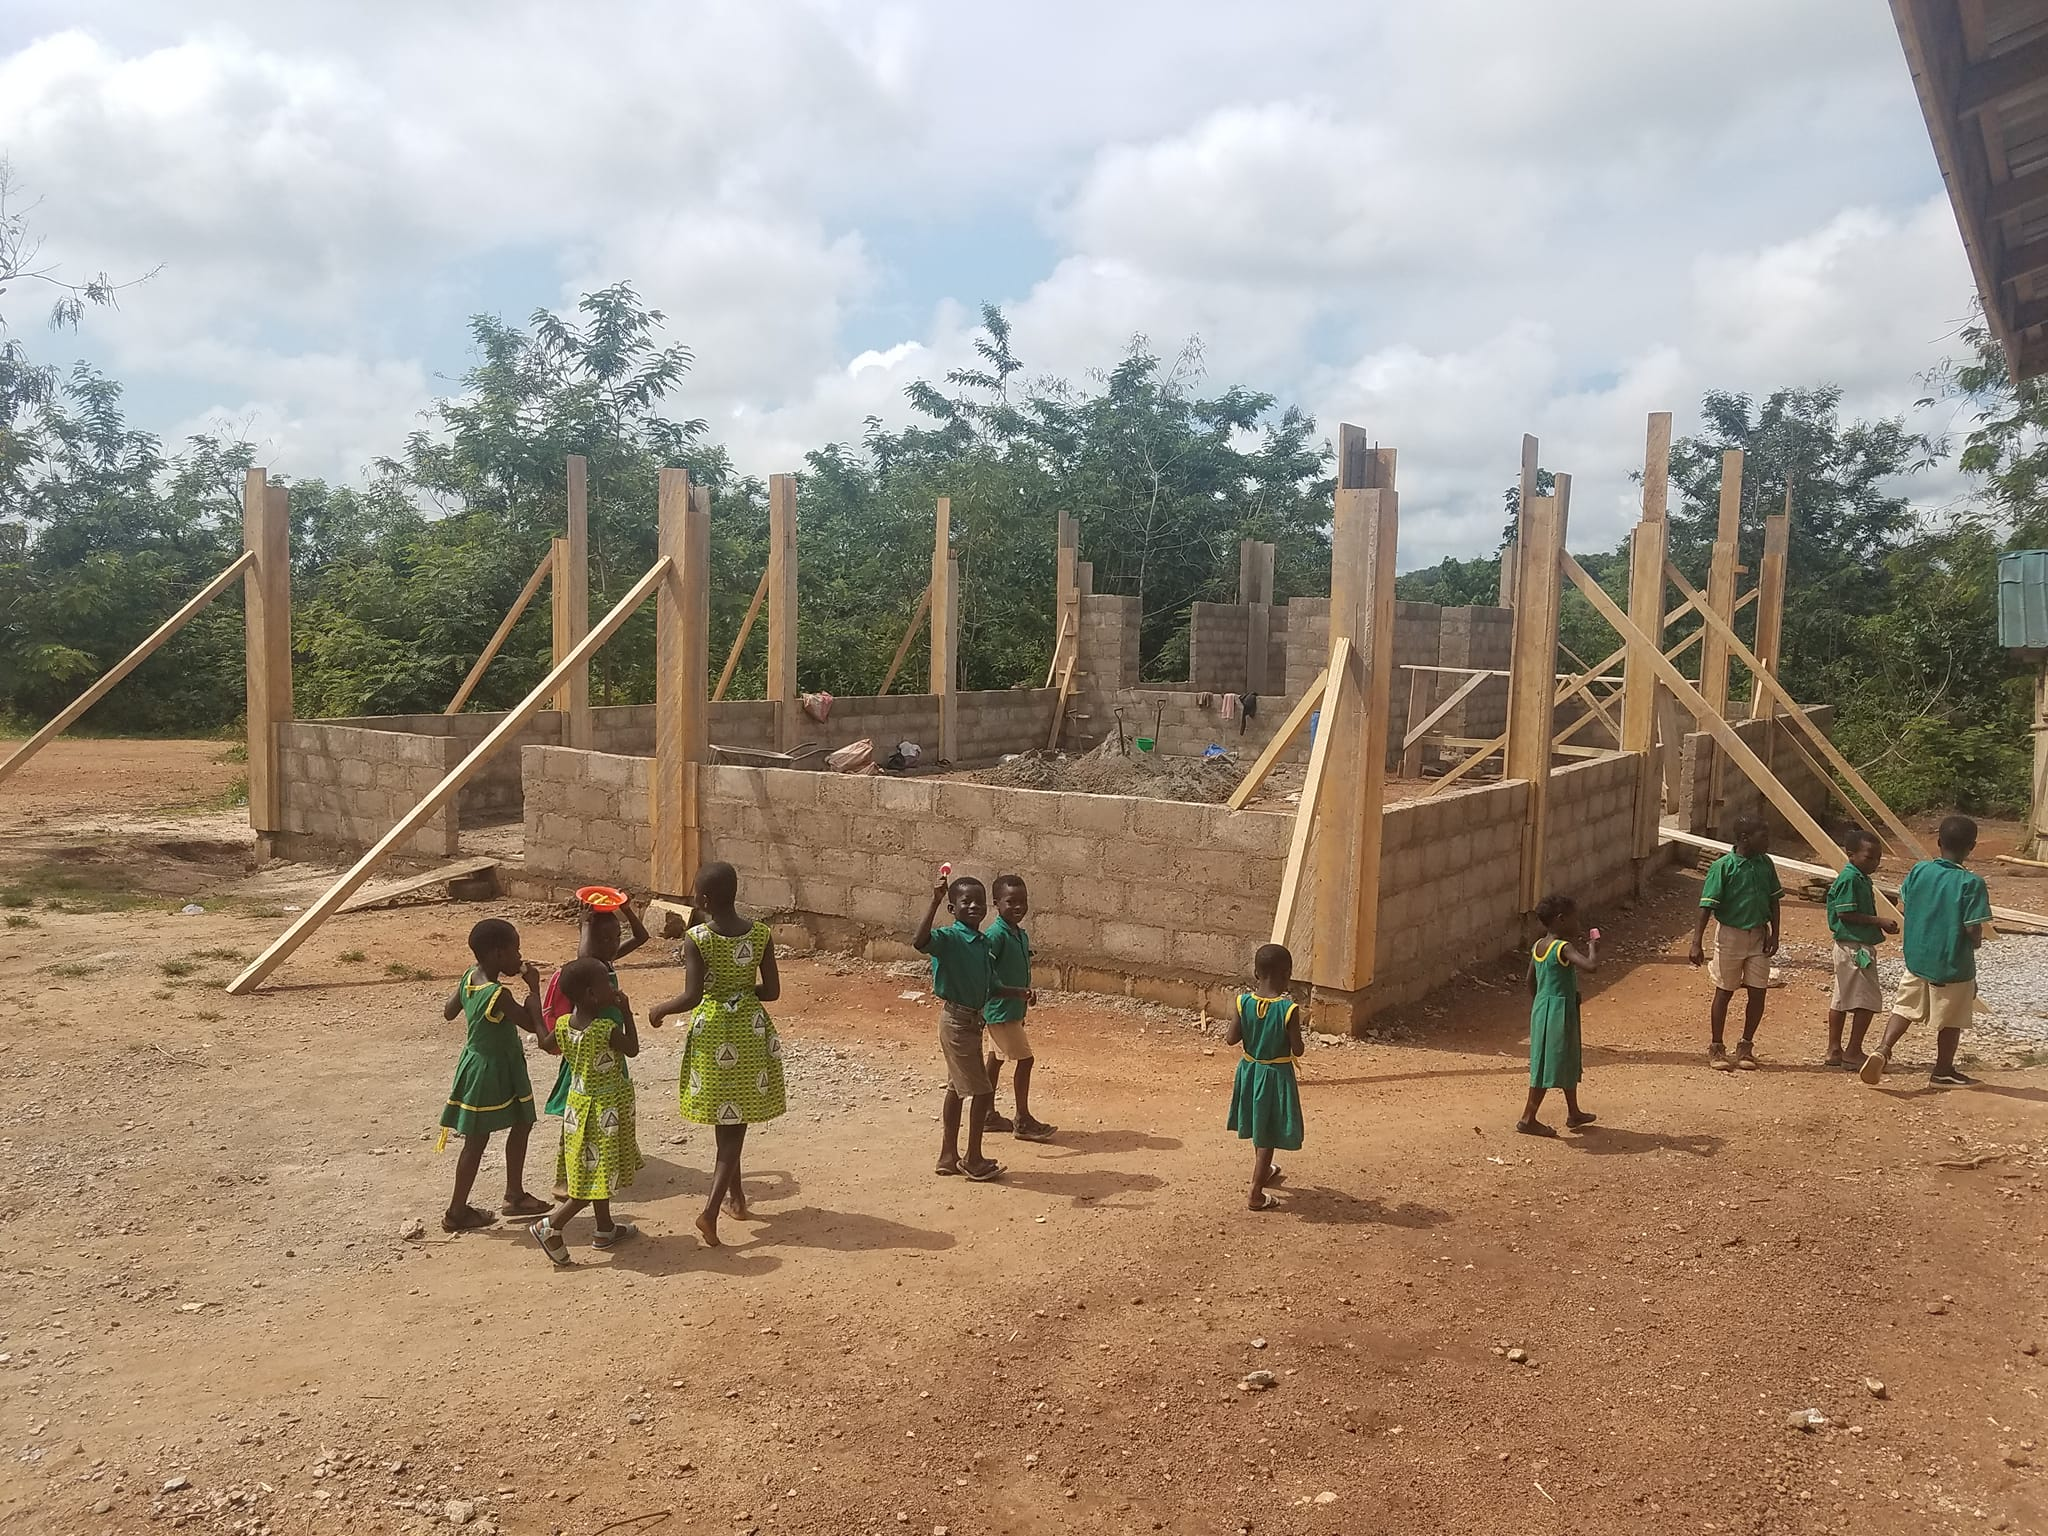 Second Phase of the Construction of the Berasi AME Zion School Cafeteria